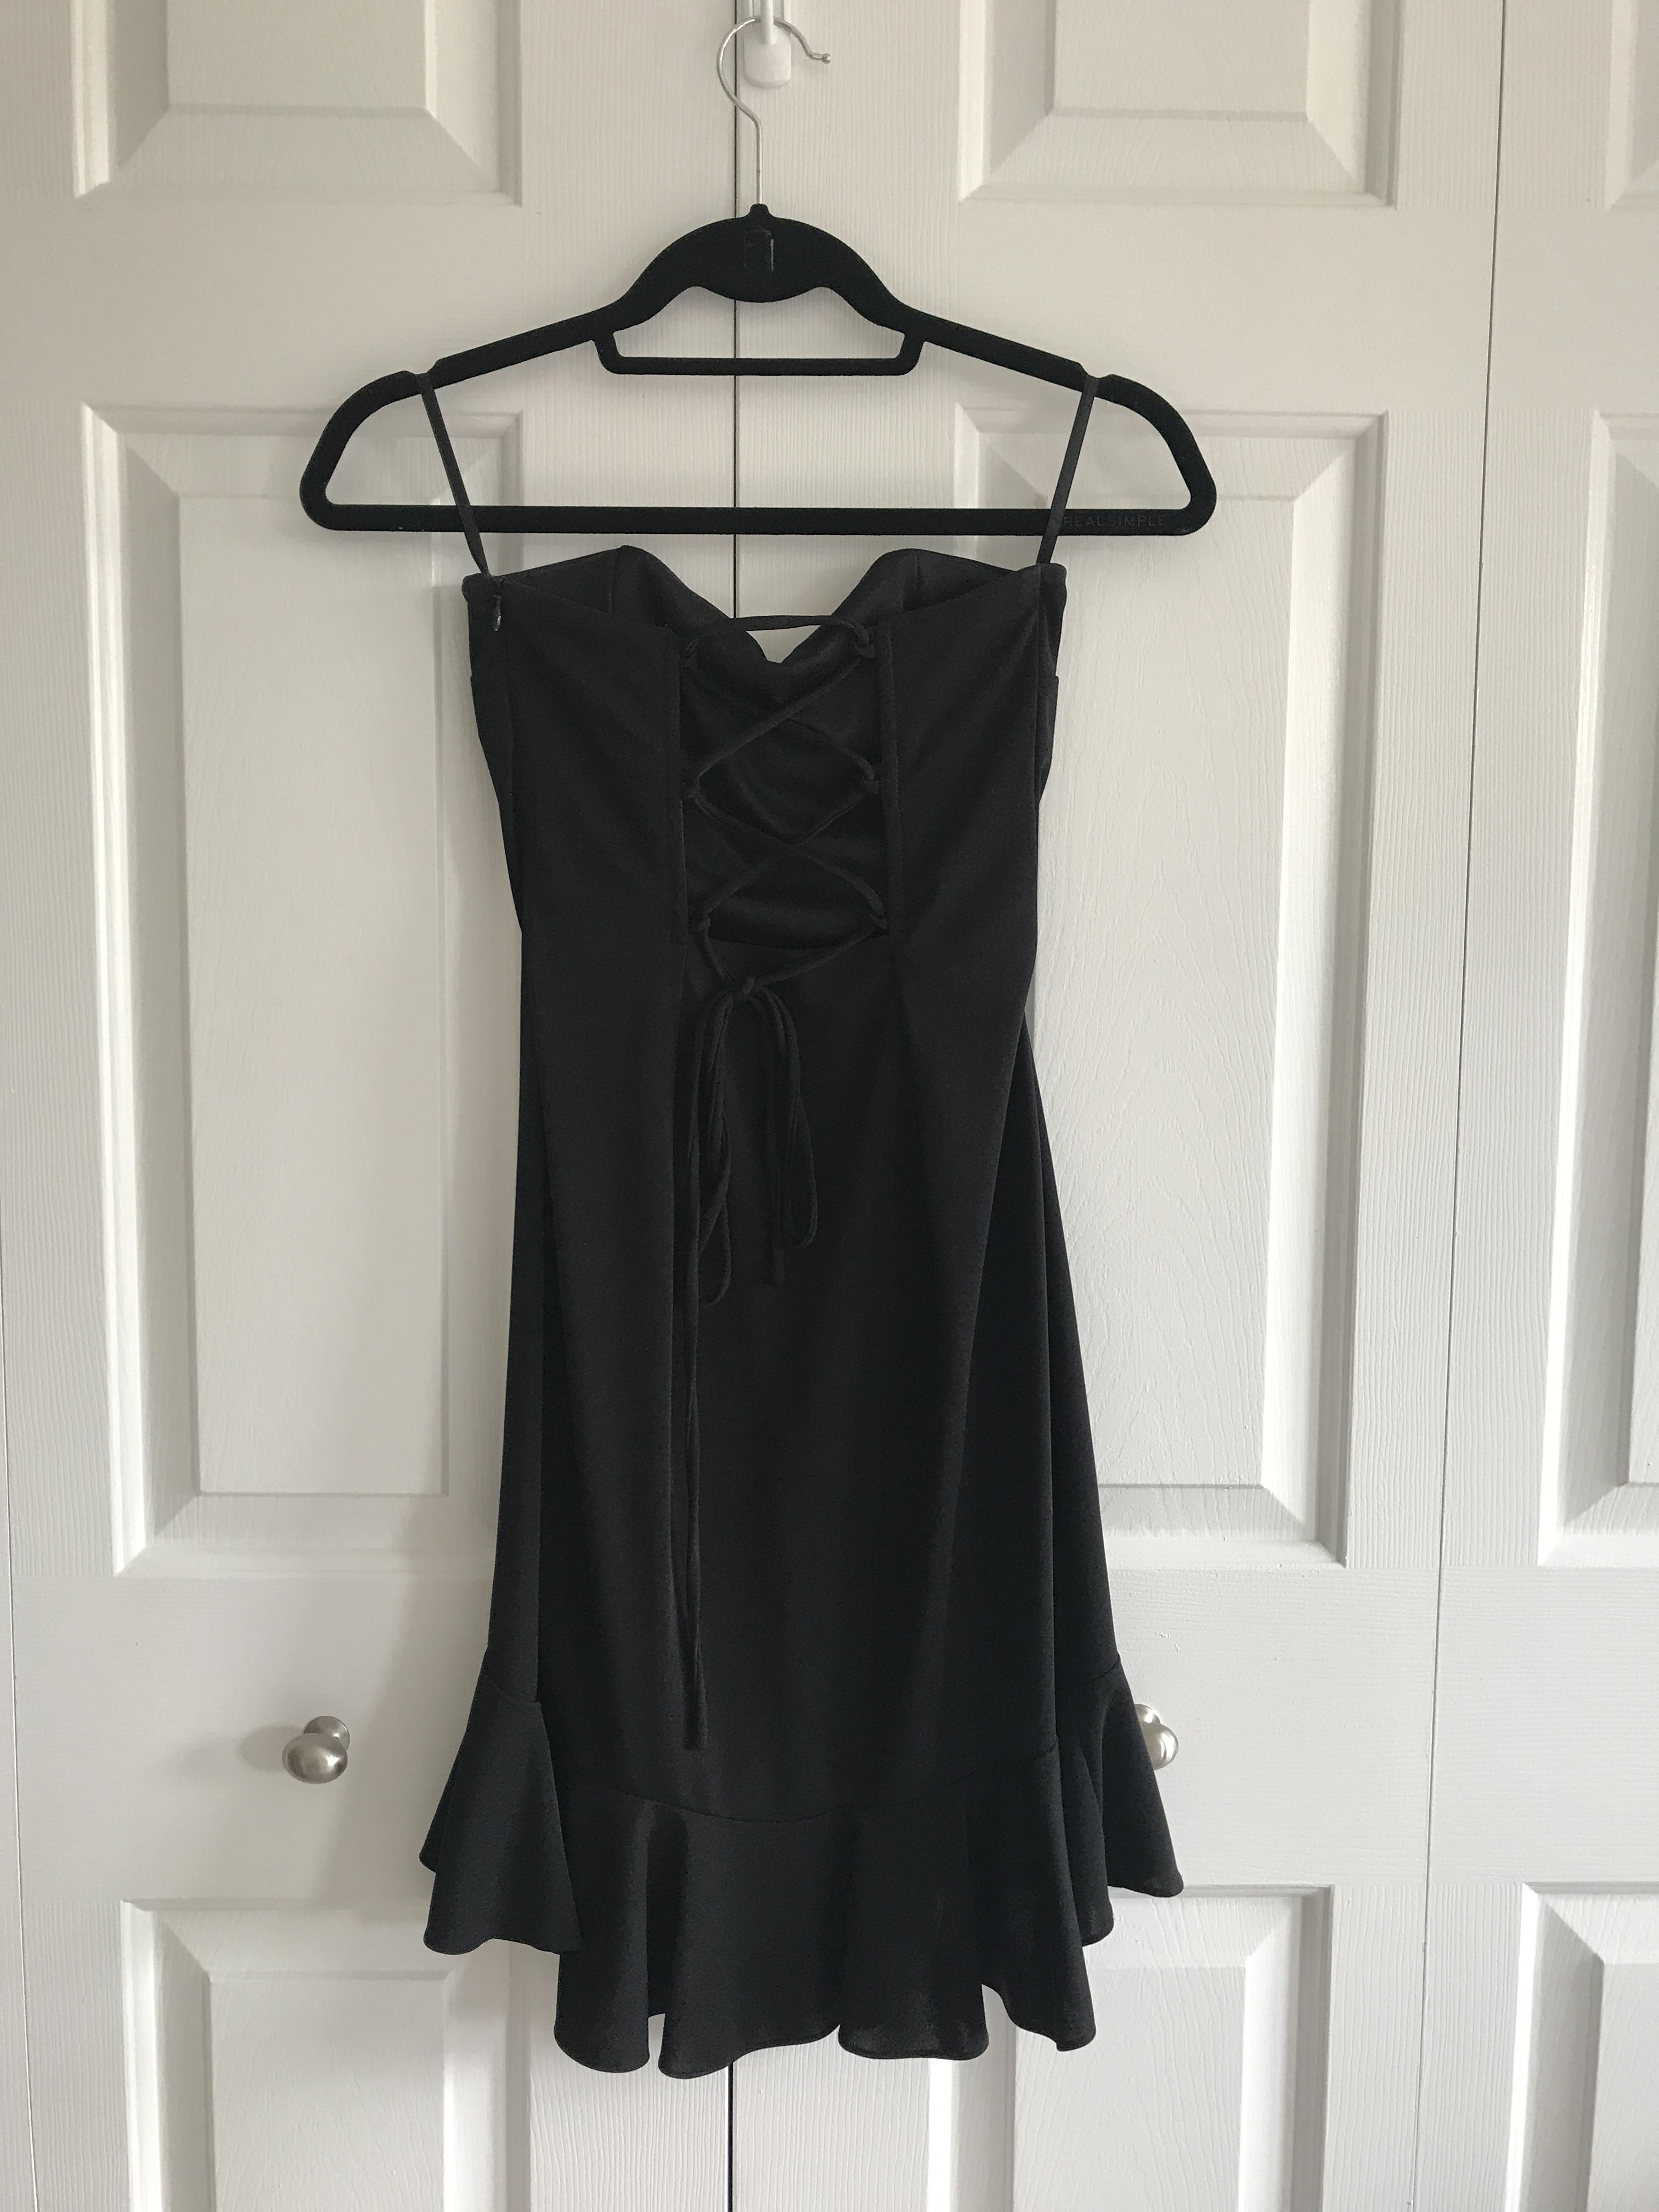 Jessica mcclintock black cocktail dresses